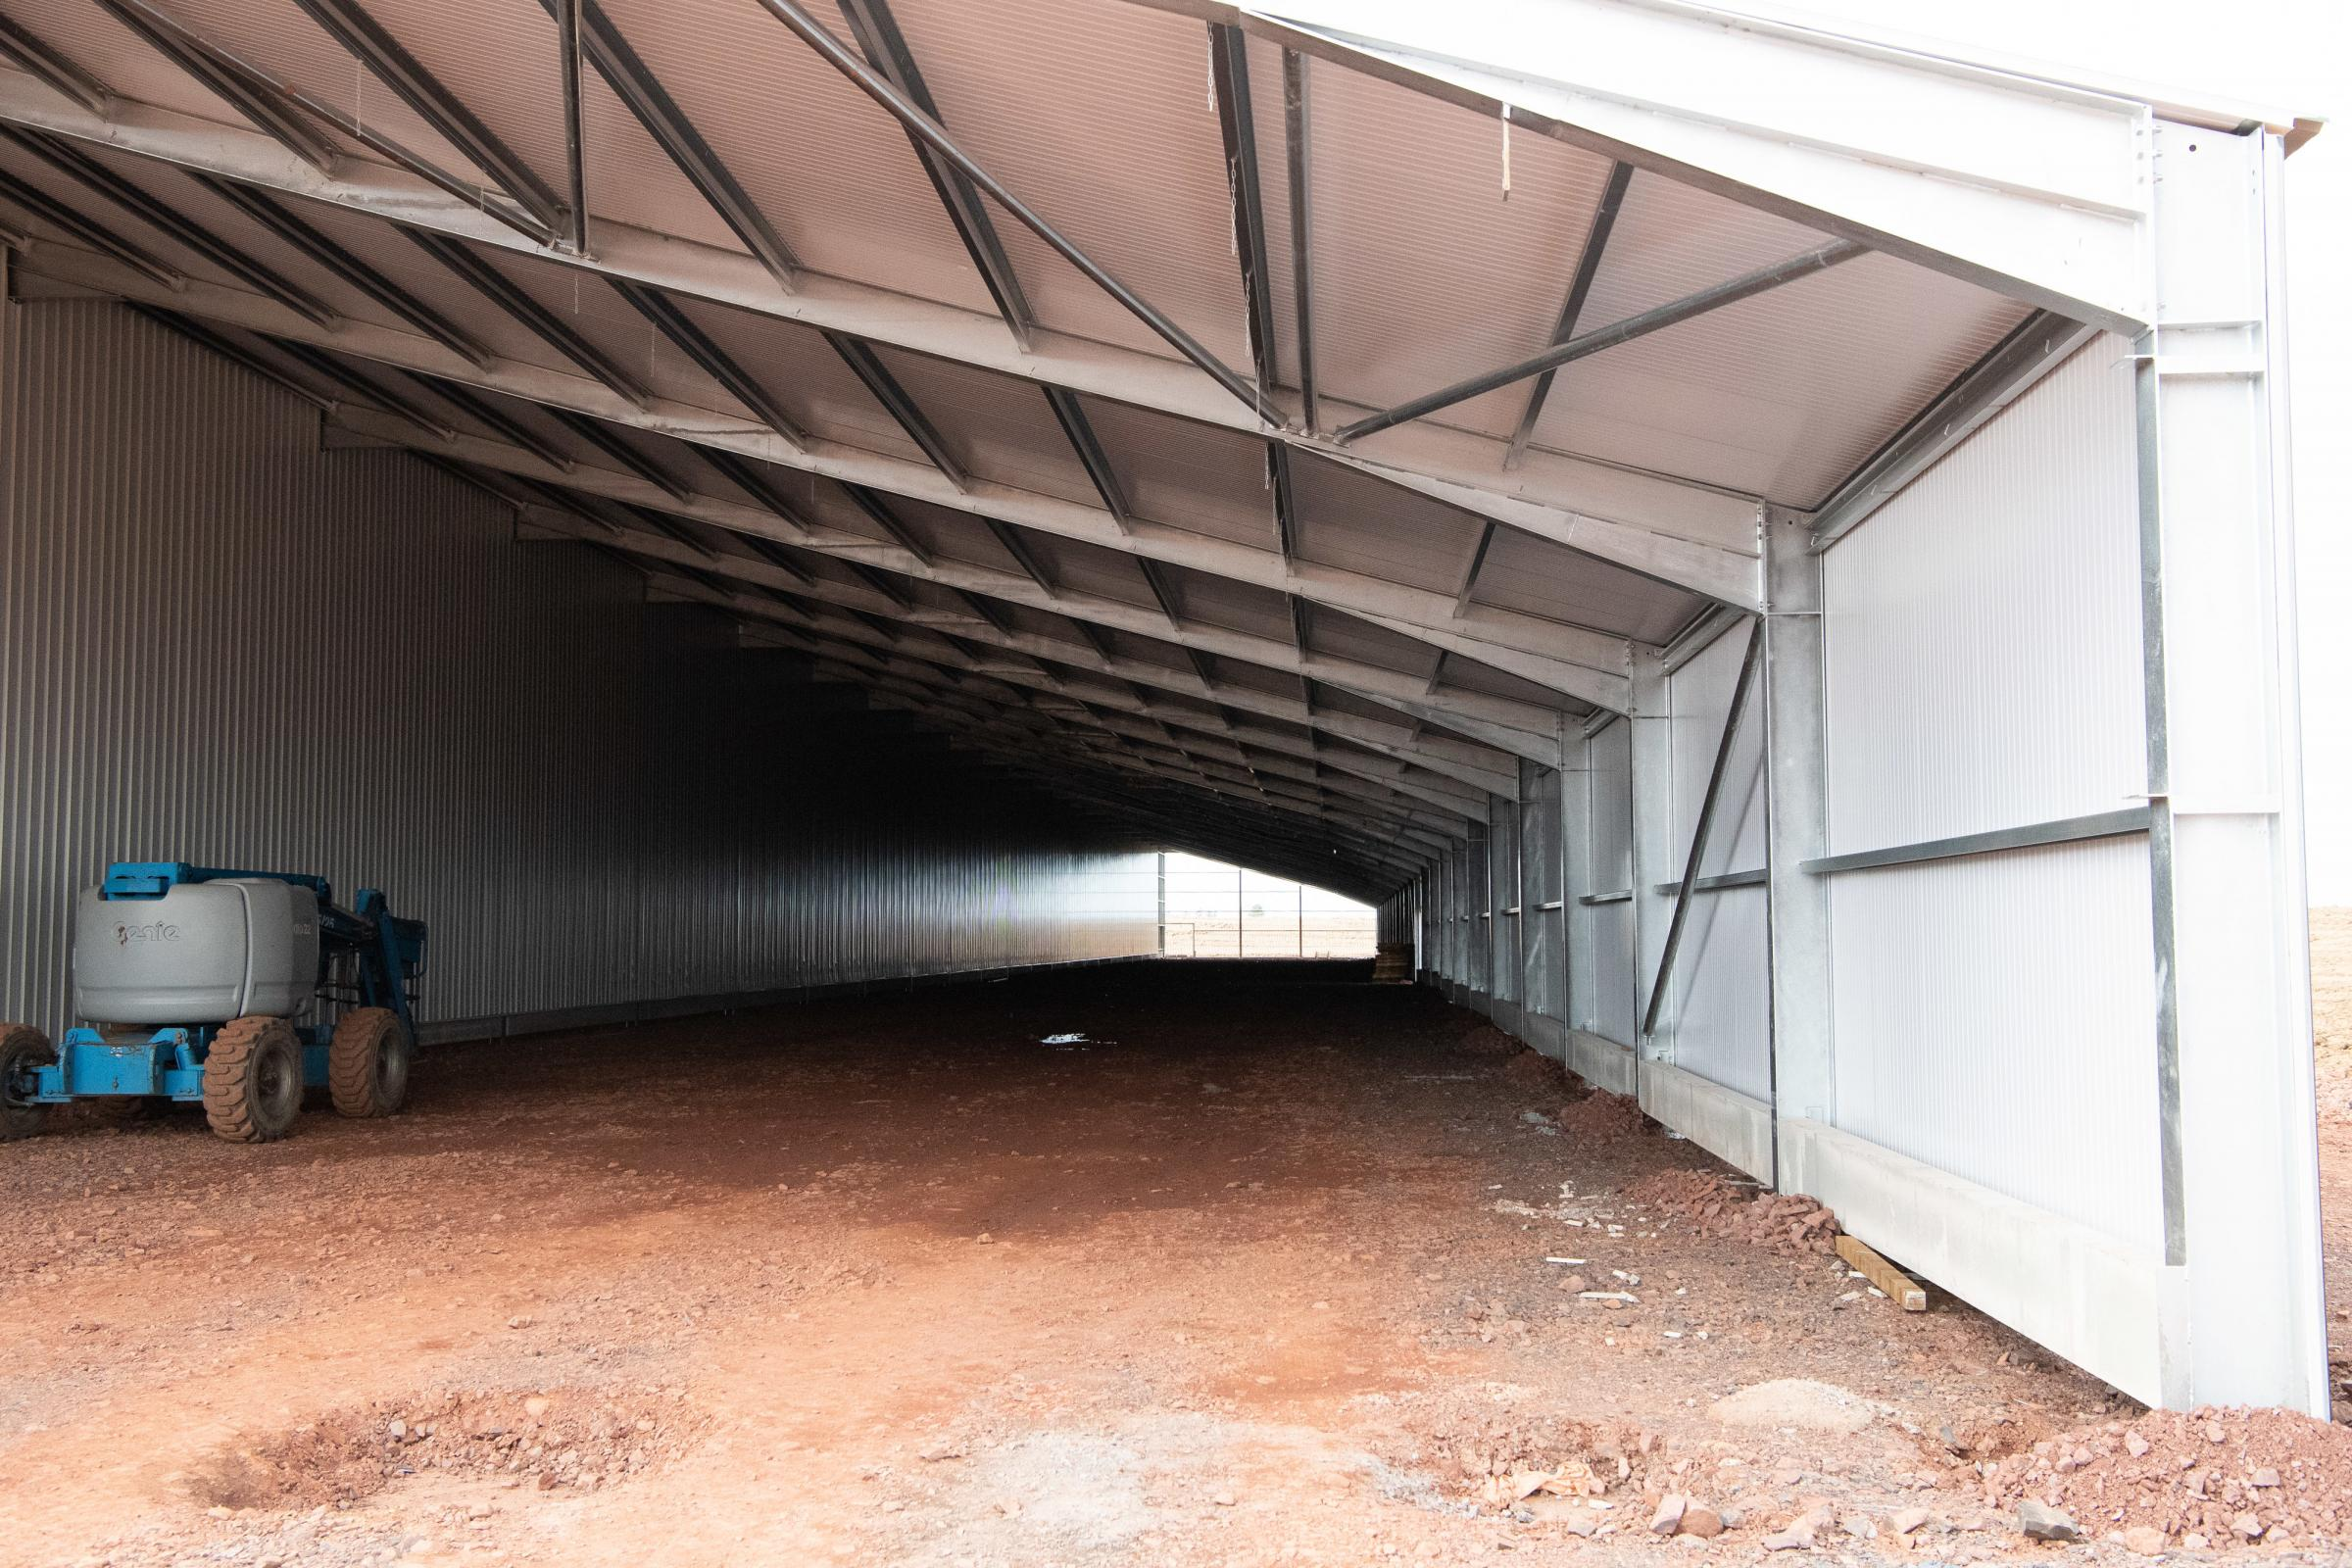 The new poultry unit is currently under construction Ref:RH210321154 Rob Haining / The Scottish Farmer...